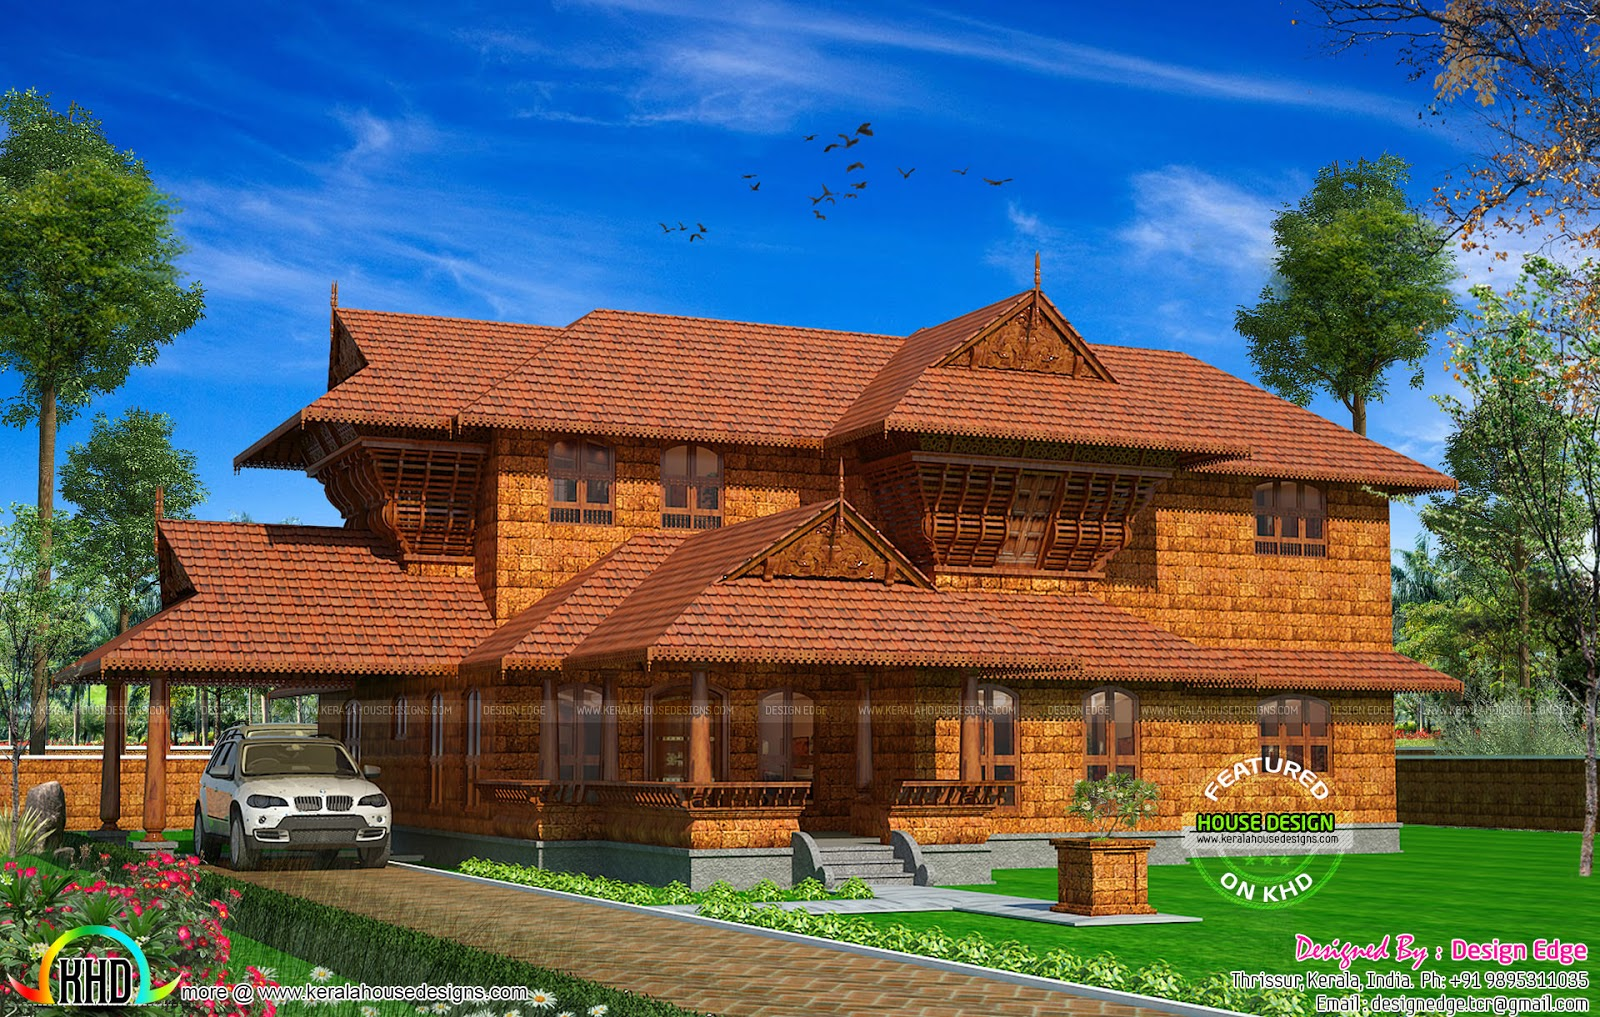 Kerala traditional home design photos pistor hermann for Traditional house plans in kerala